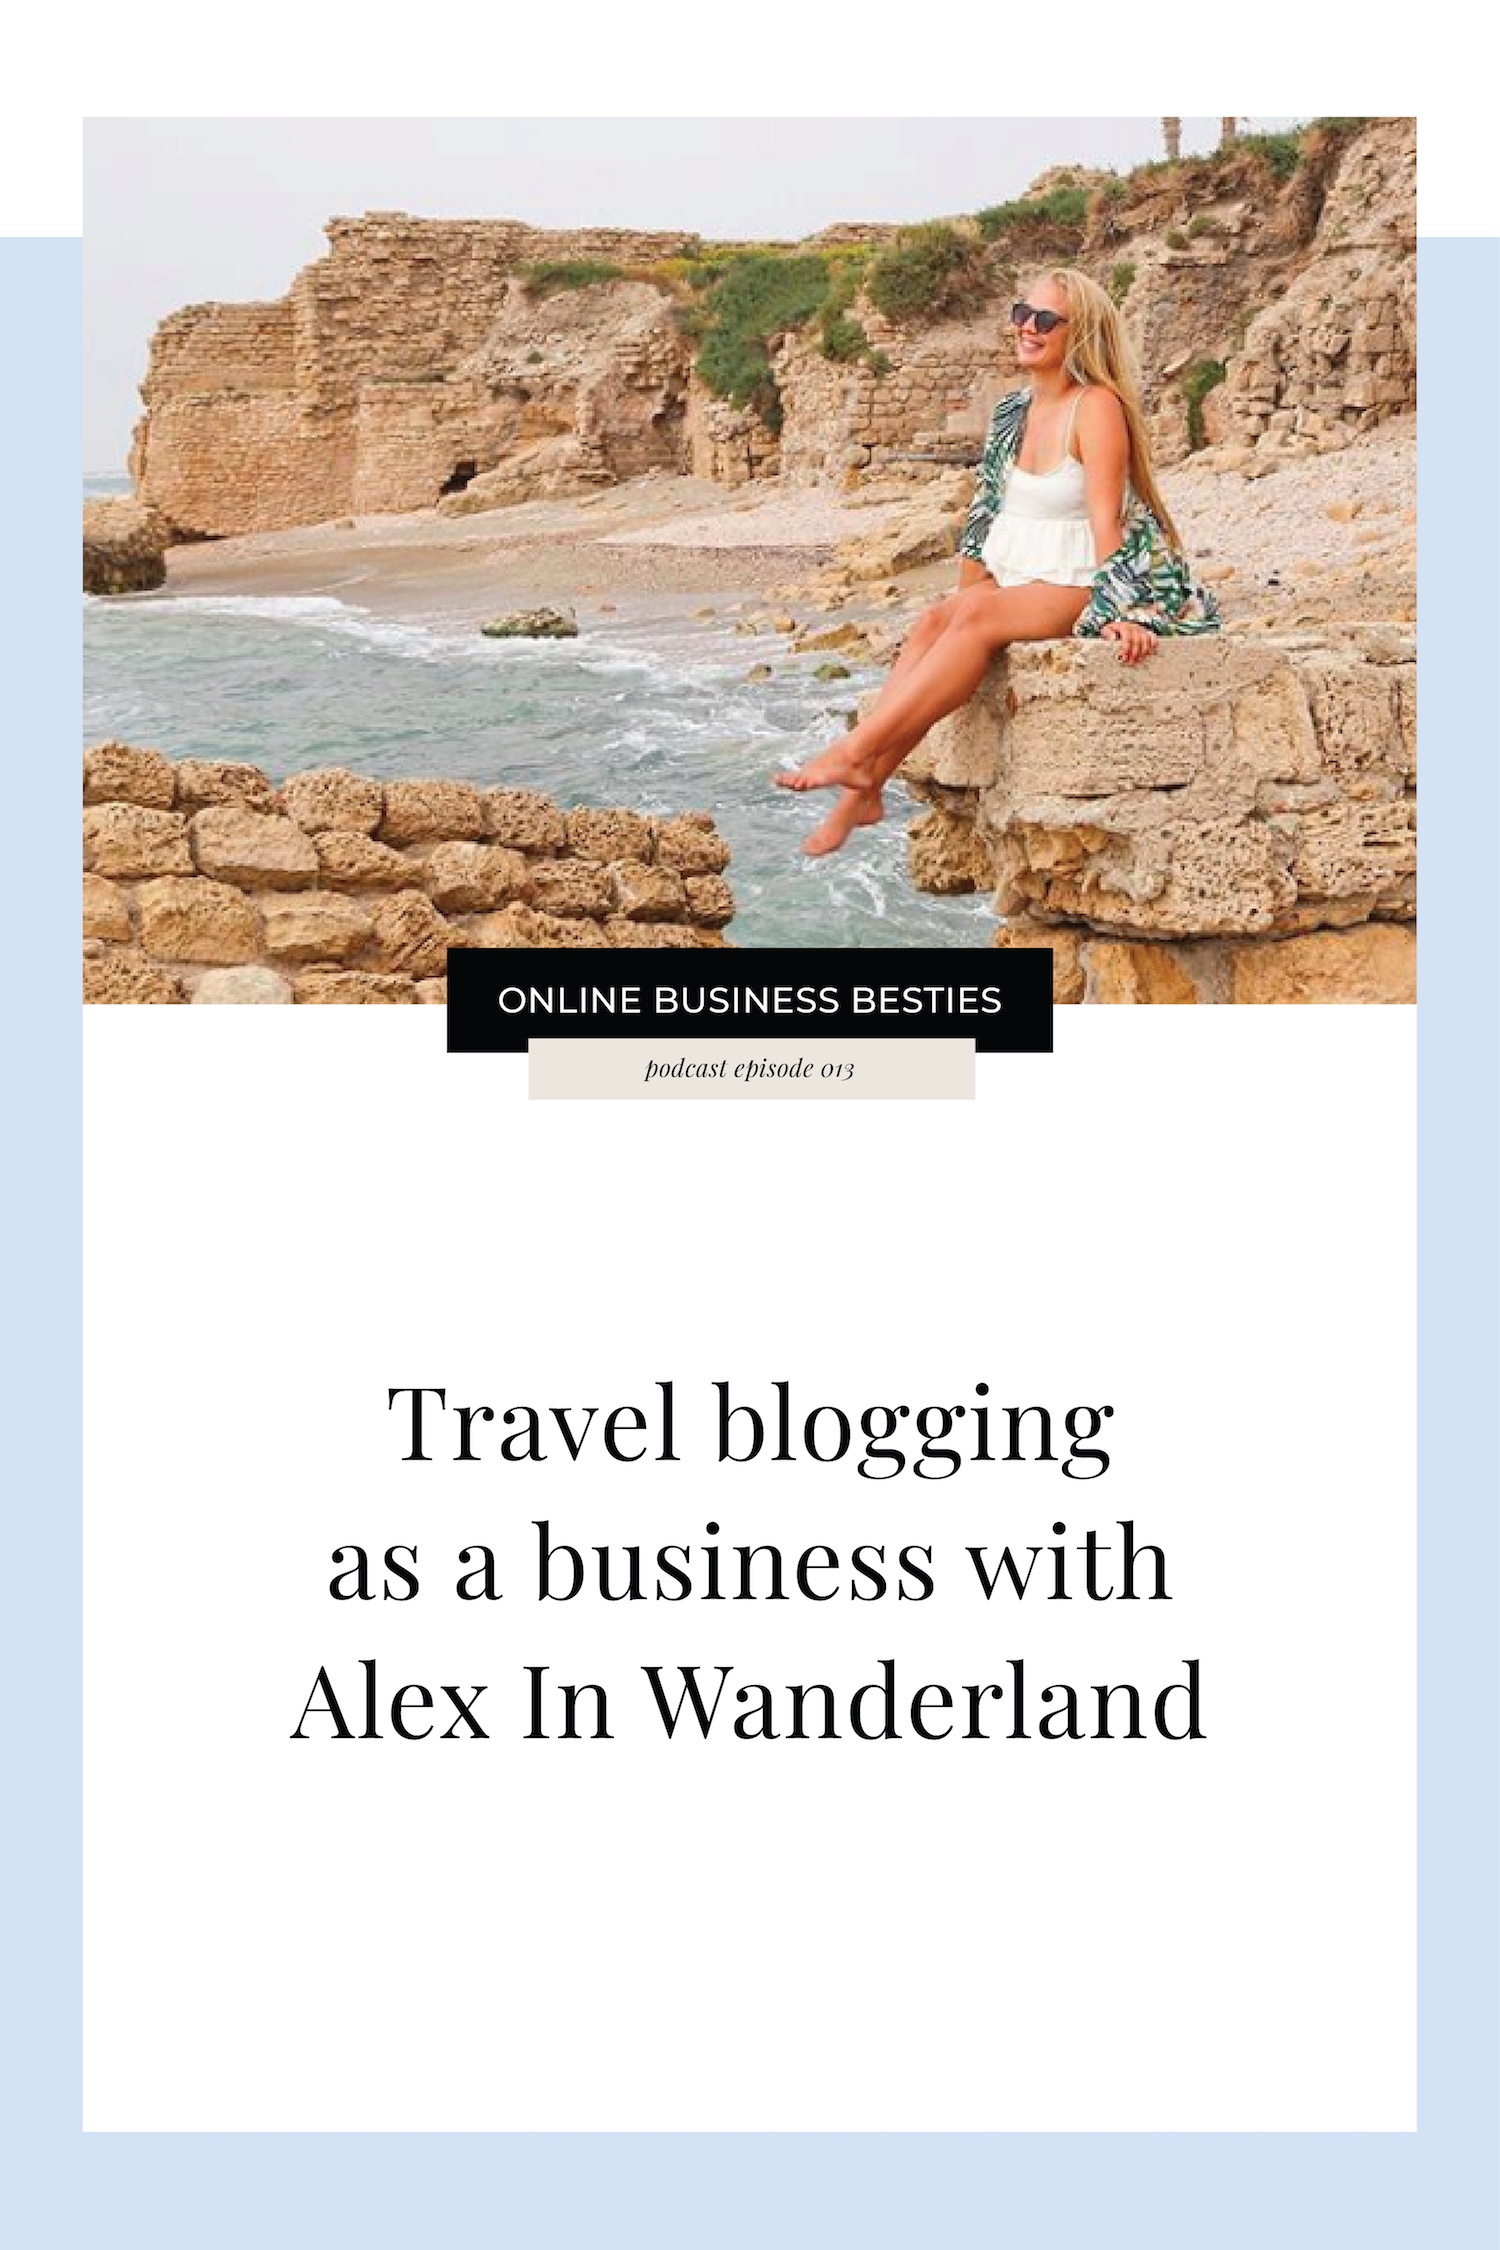 Travel blogging as a business with Alex in Wanderland.jpeg